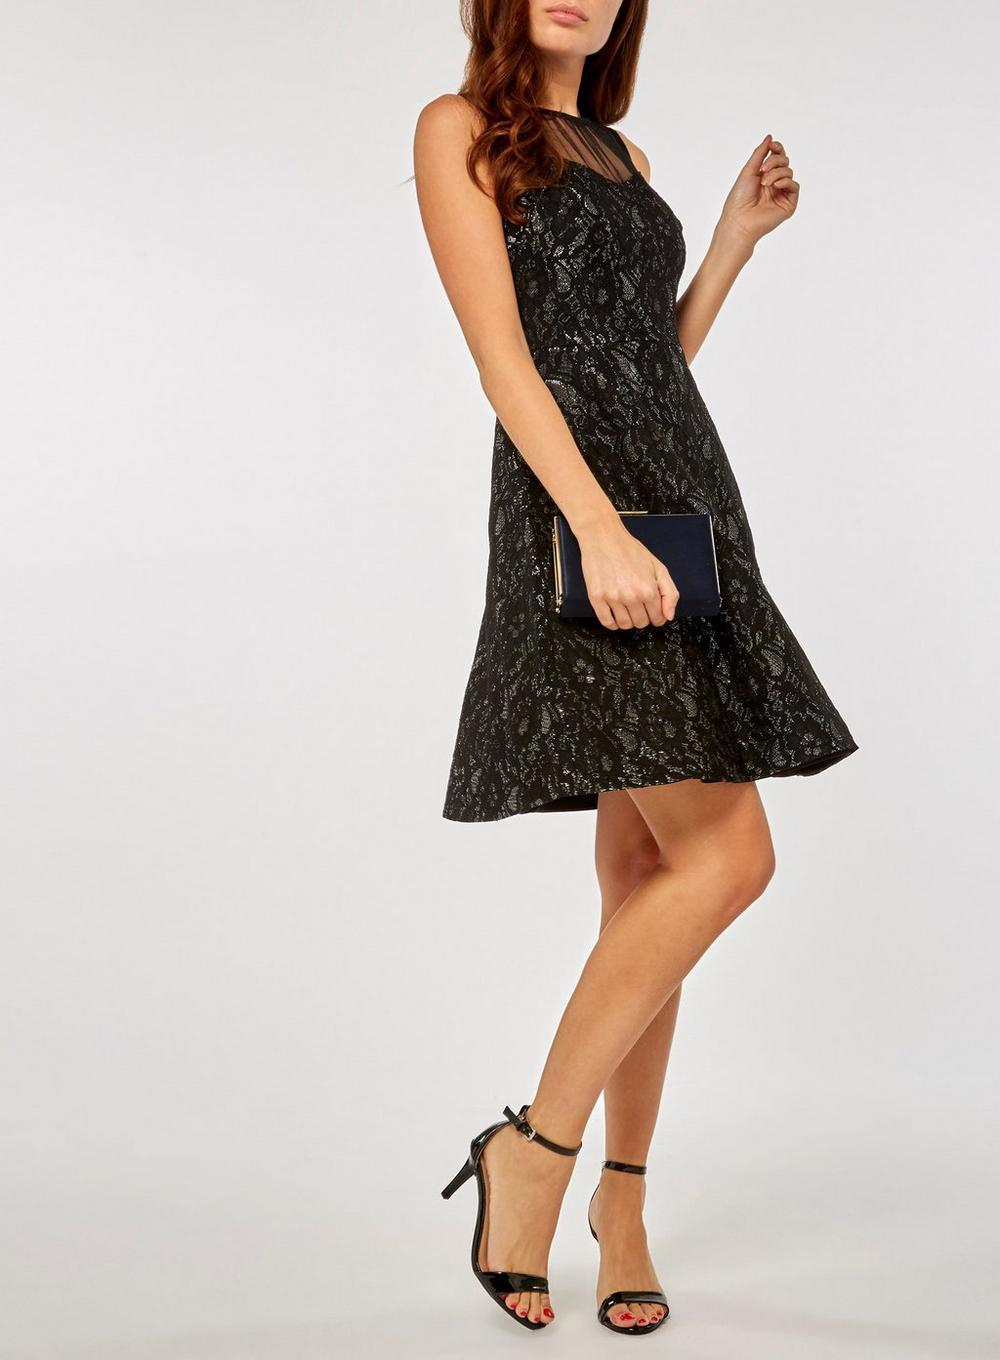 337852e84c0b Lyst - Dorothy Perkins Black And Silver Shimmer Lace Skater Dress in ...